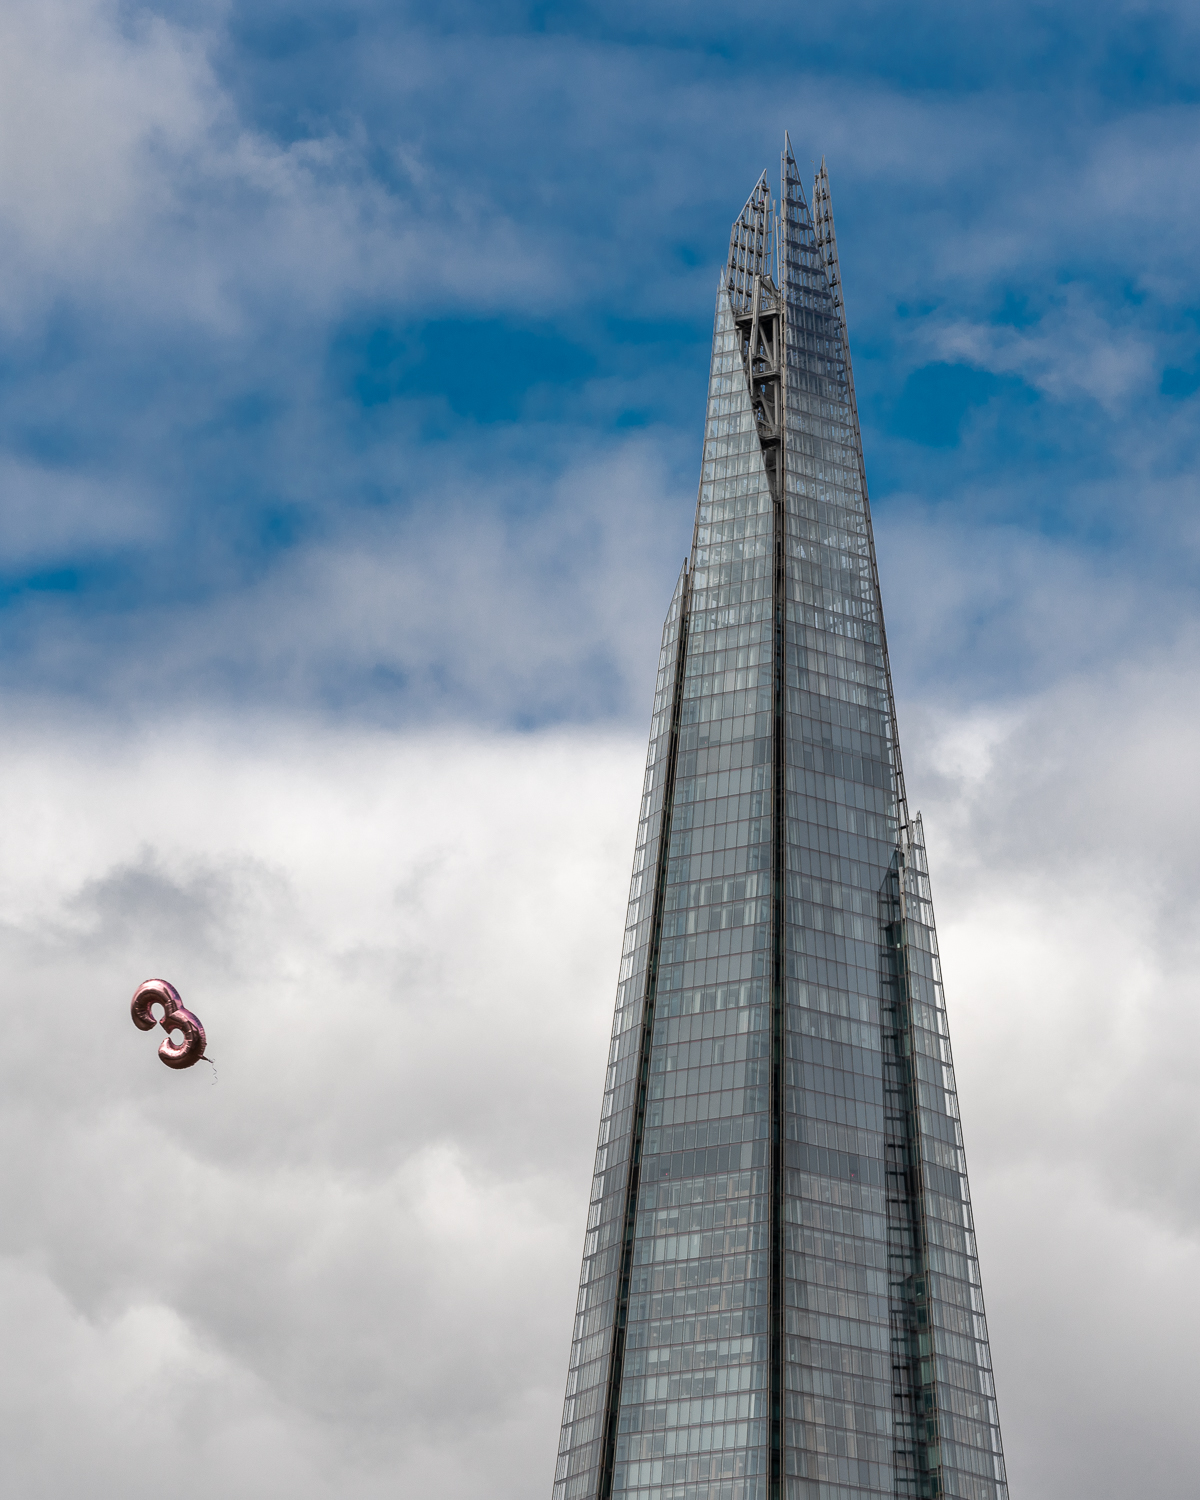 A pink balloon in shape of a 3 flying past The Shard